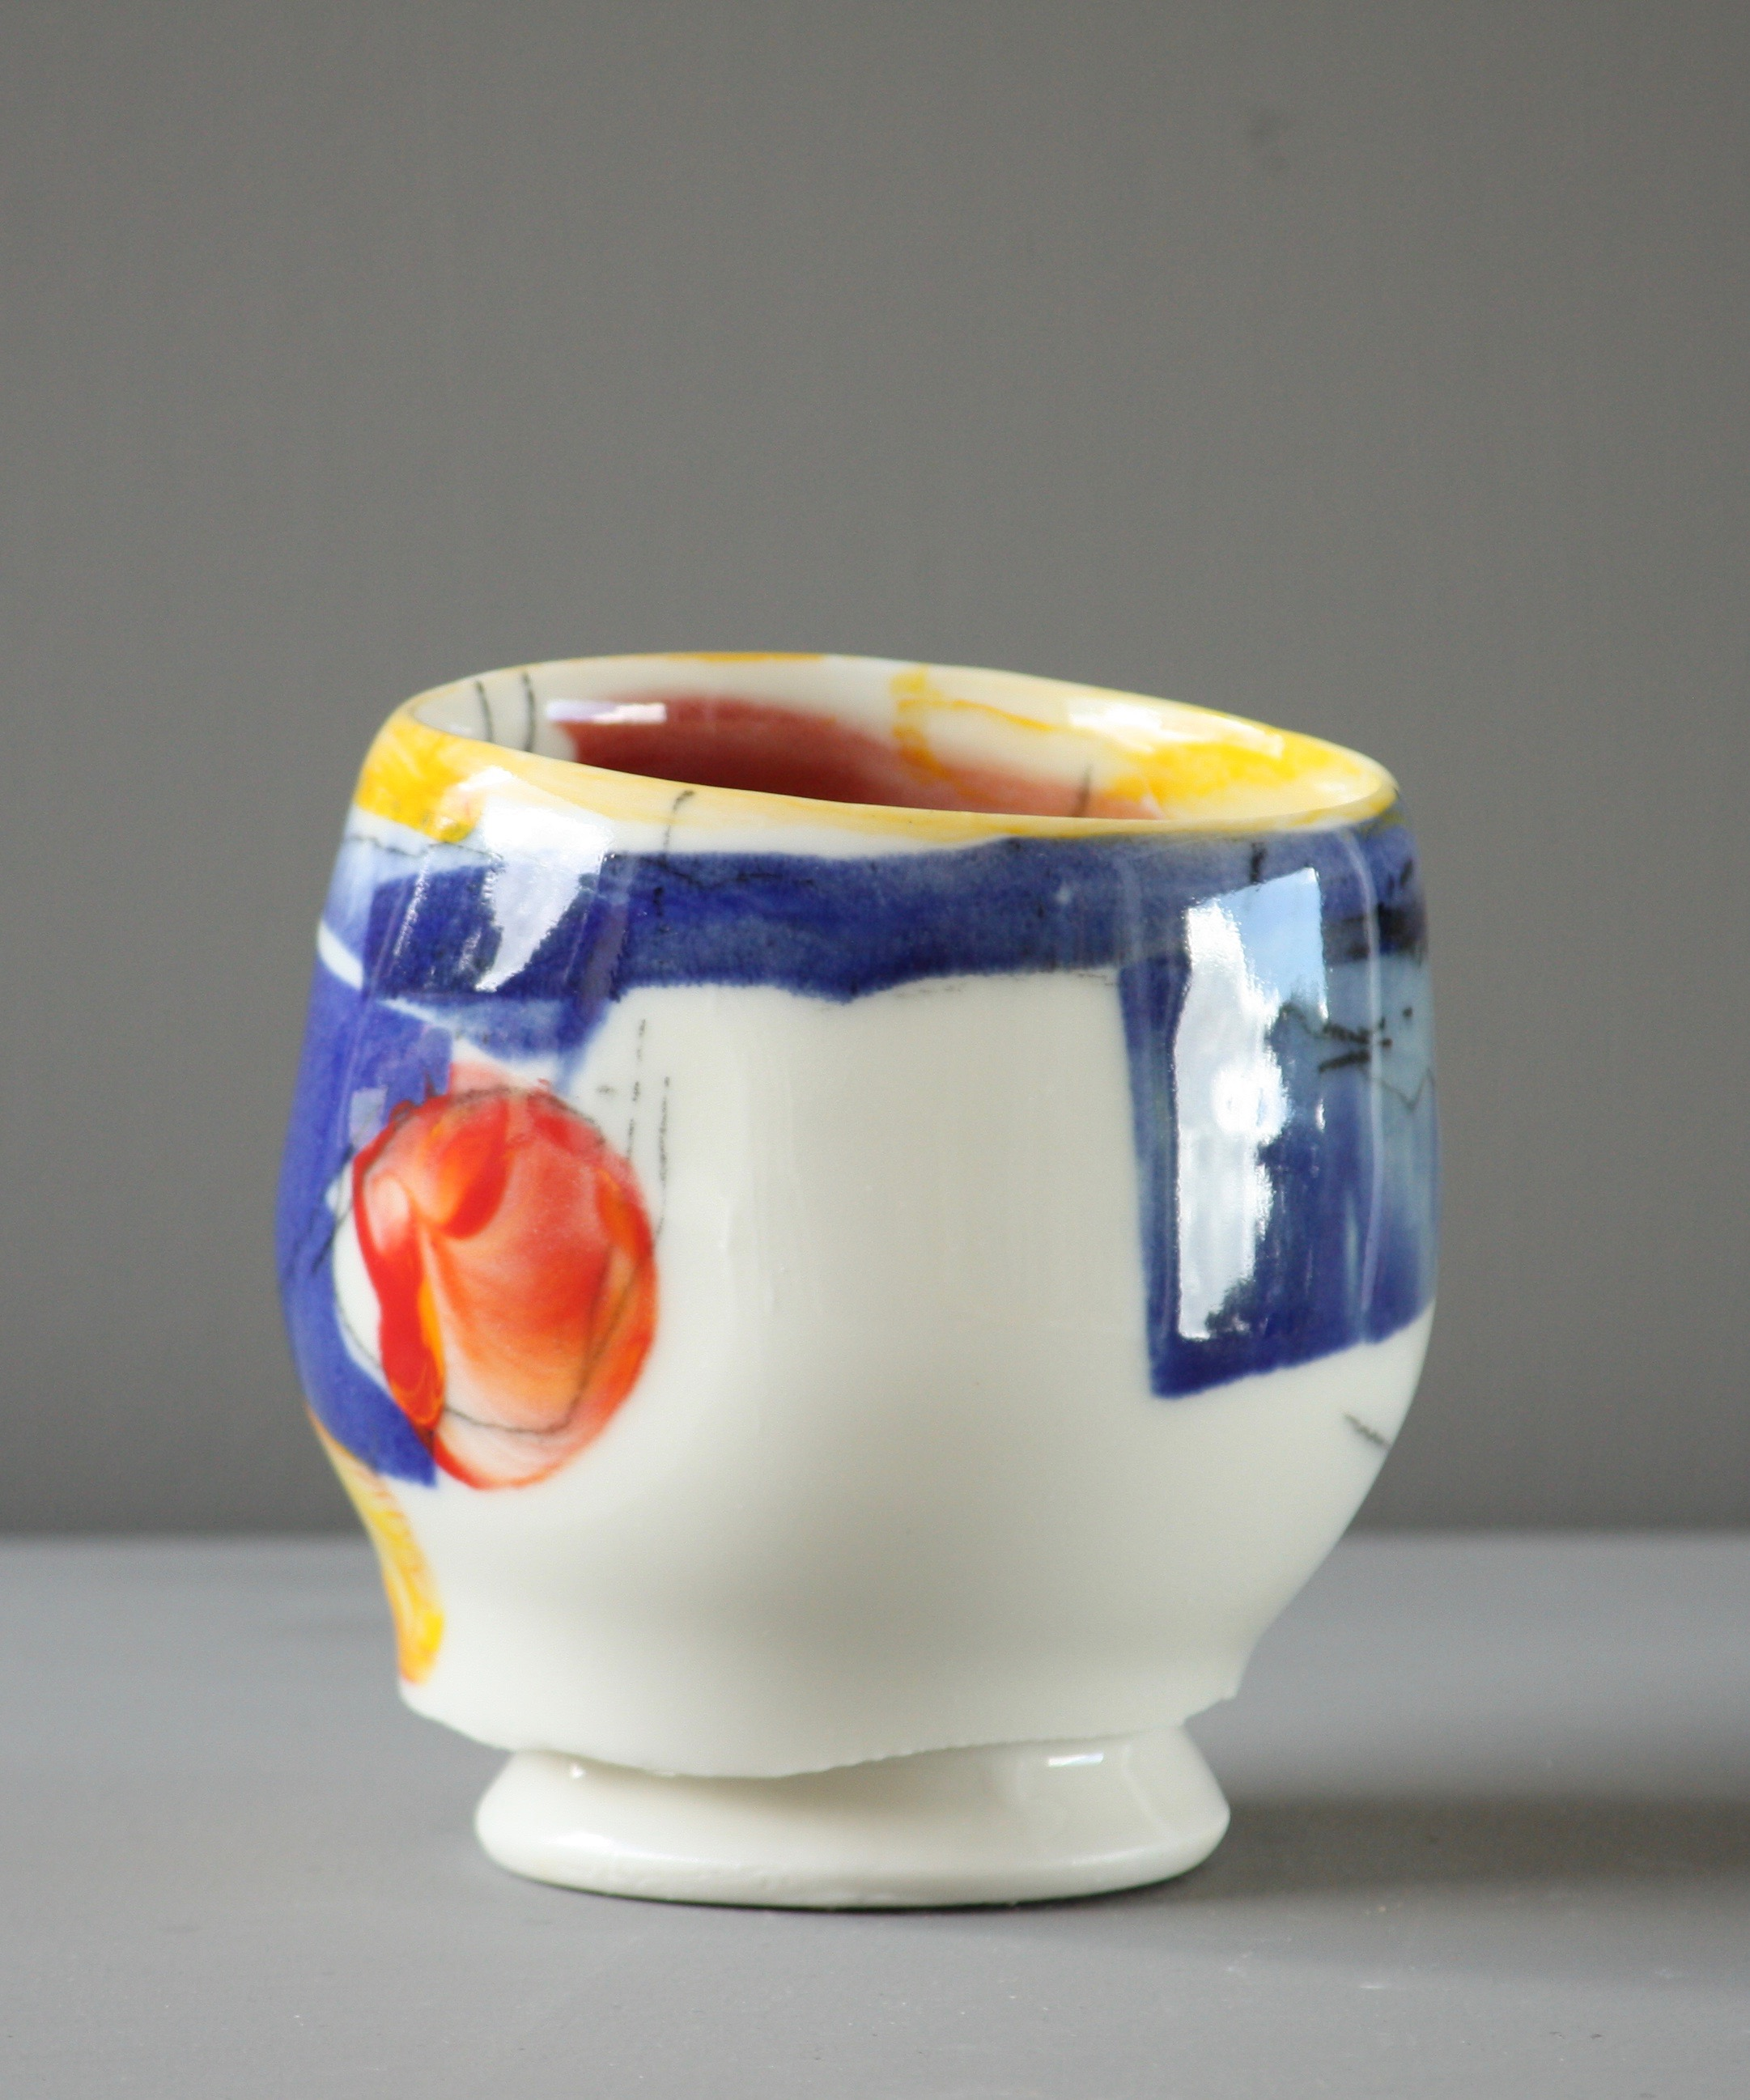 Hot Ice Ceramic Vessel with Decal detail by Ashley Howard